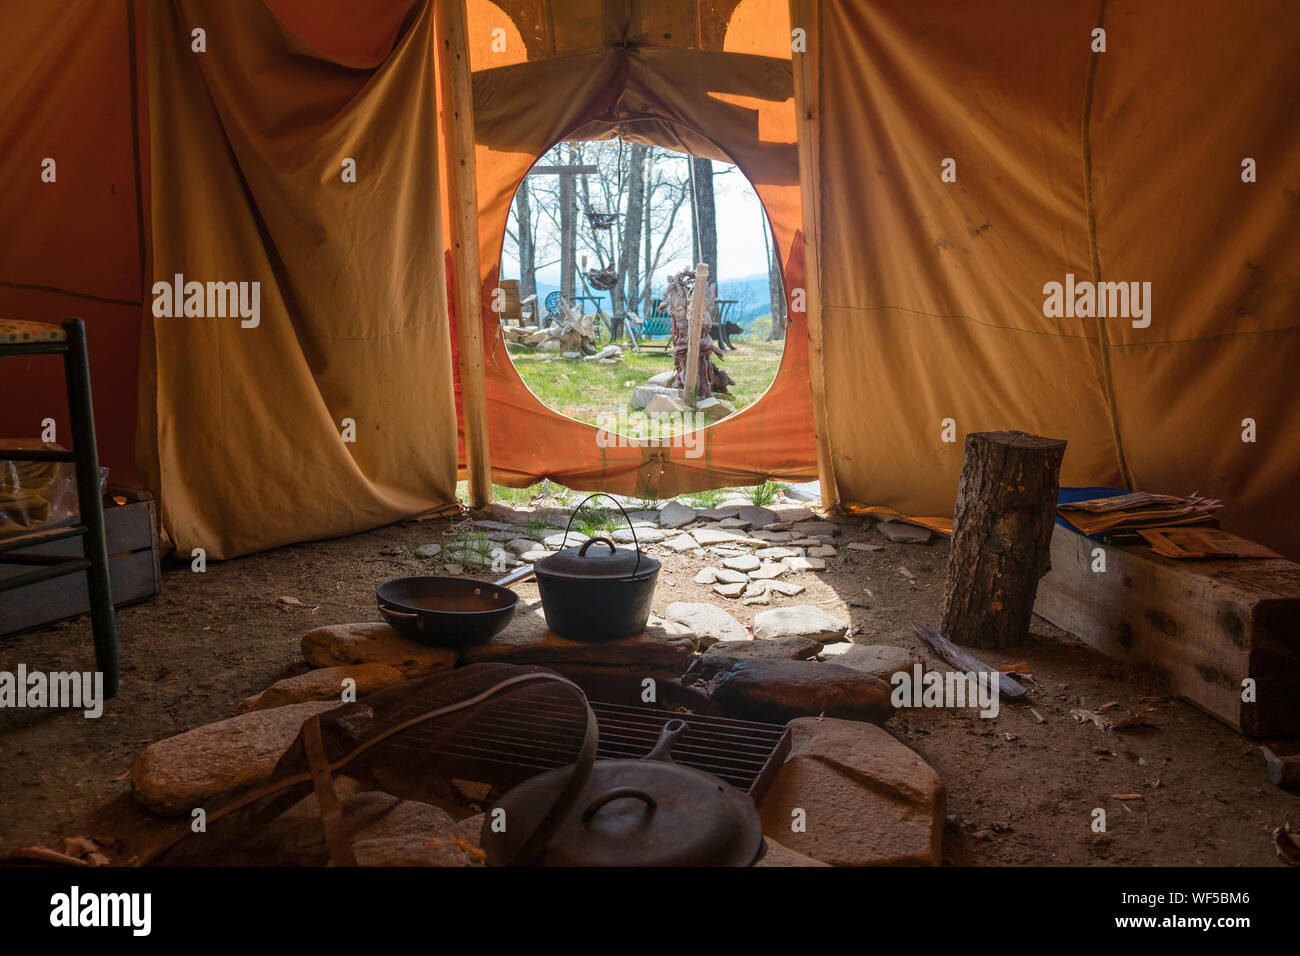 Interior View Of Tent Stock Photo